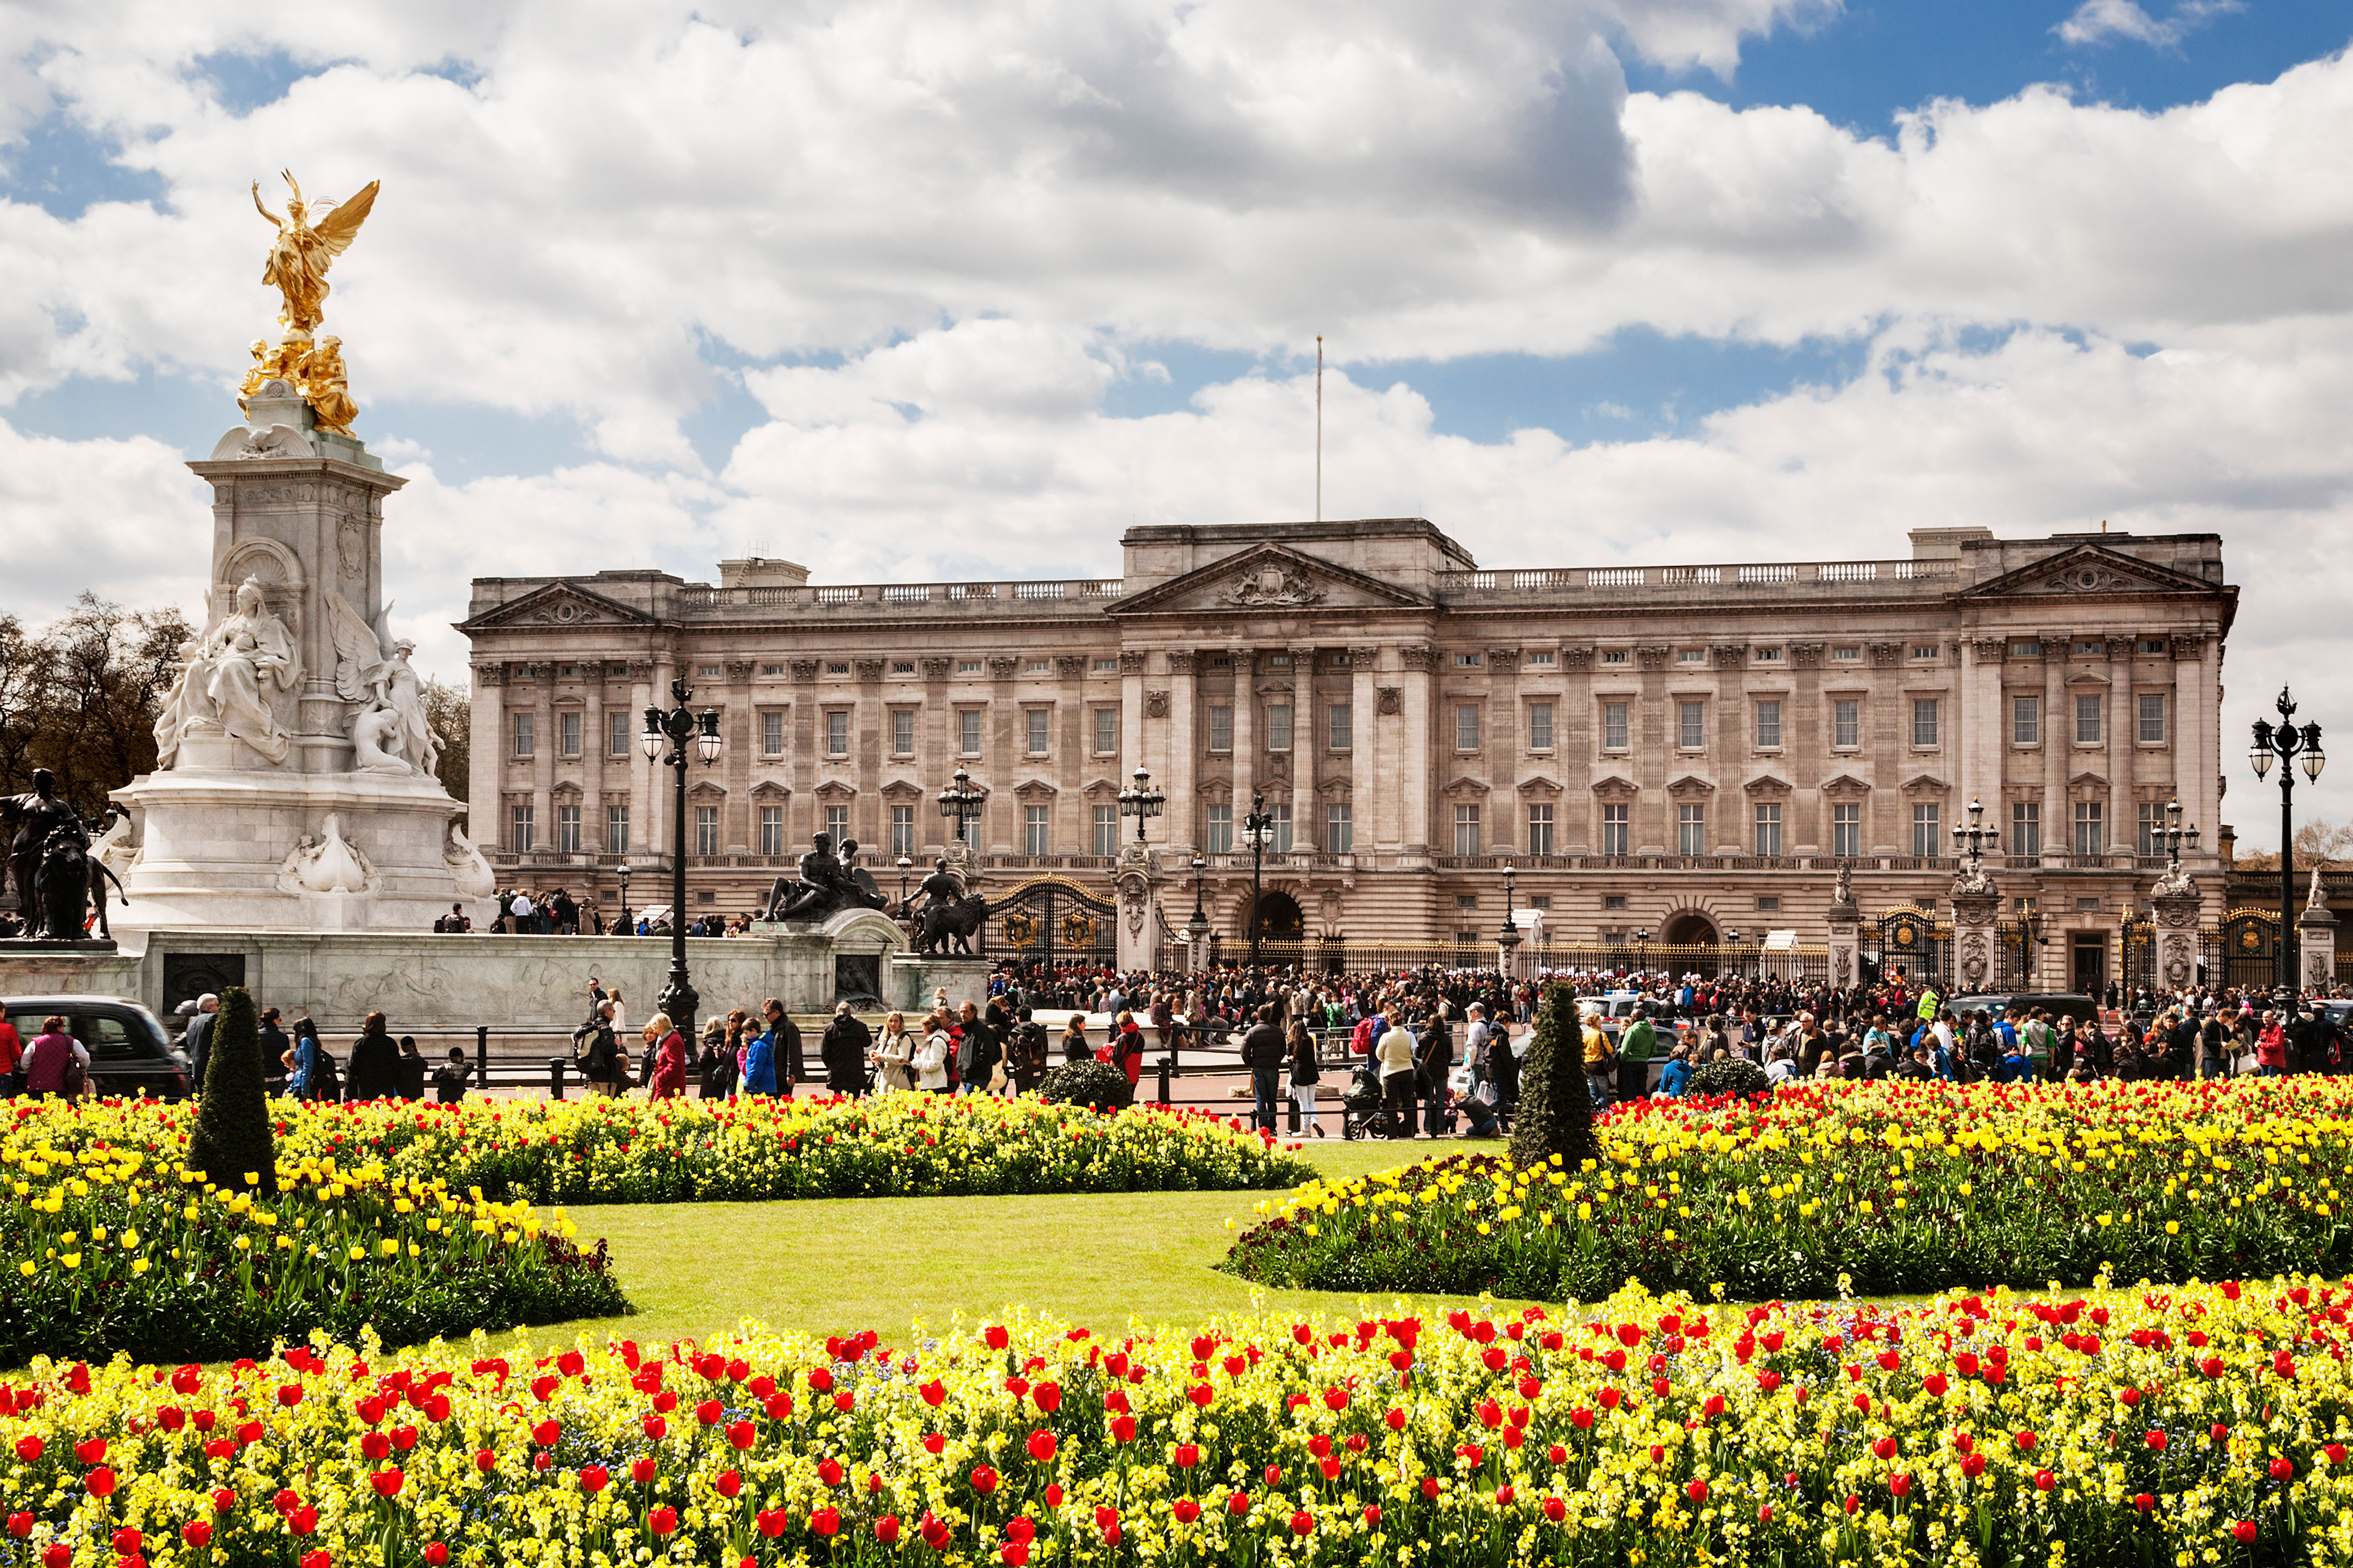 2015 07 31 1438366140 1223653 buckinghampalace jpg. Buckingham Palace Is Now Open to the Public   The Huffington Post